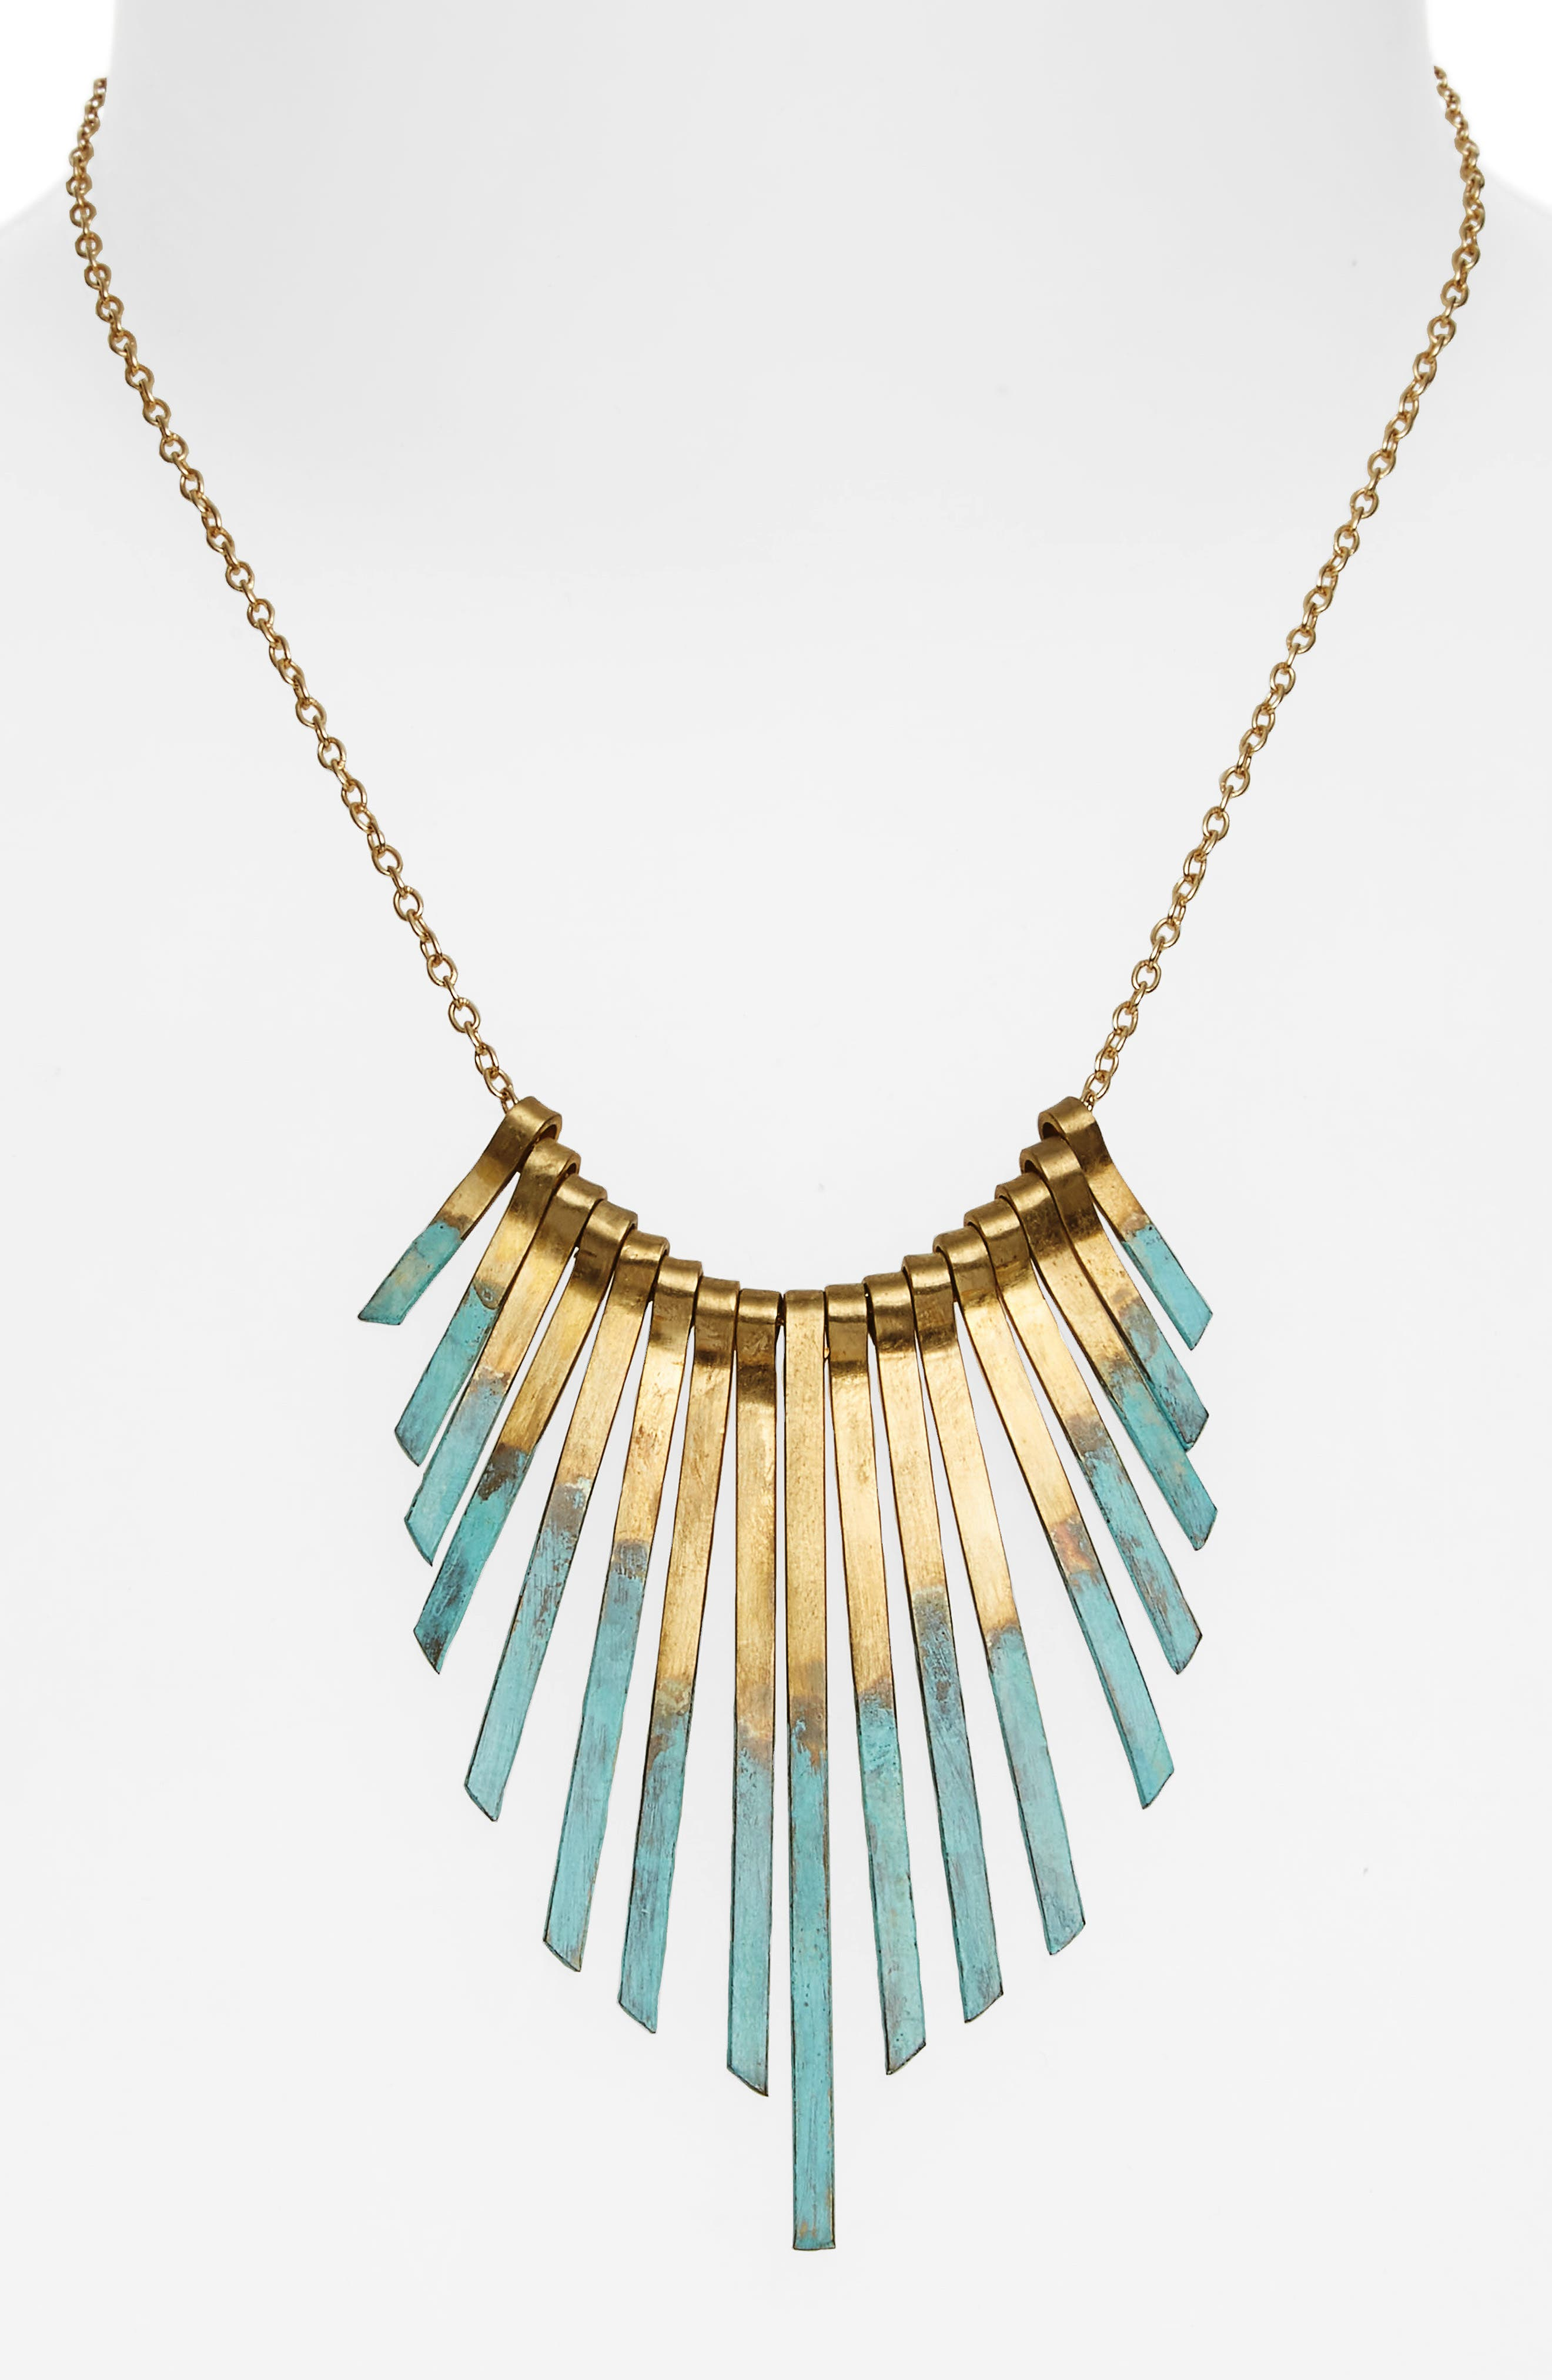 Patina Stick Necklace,                             Alternate thumbnail 2, color,                             Gold/ Multi